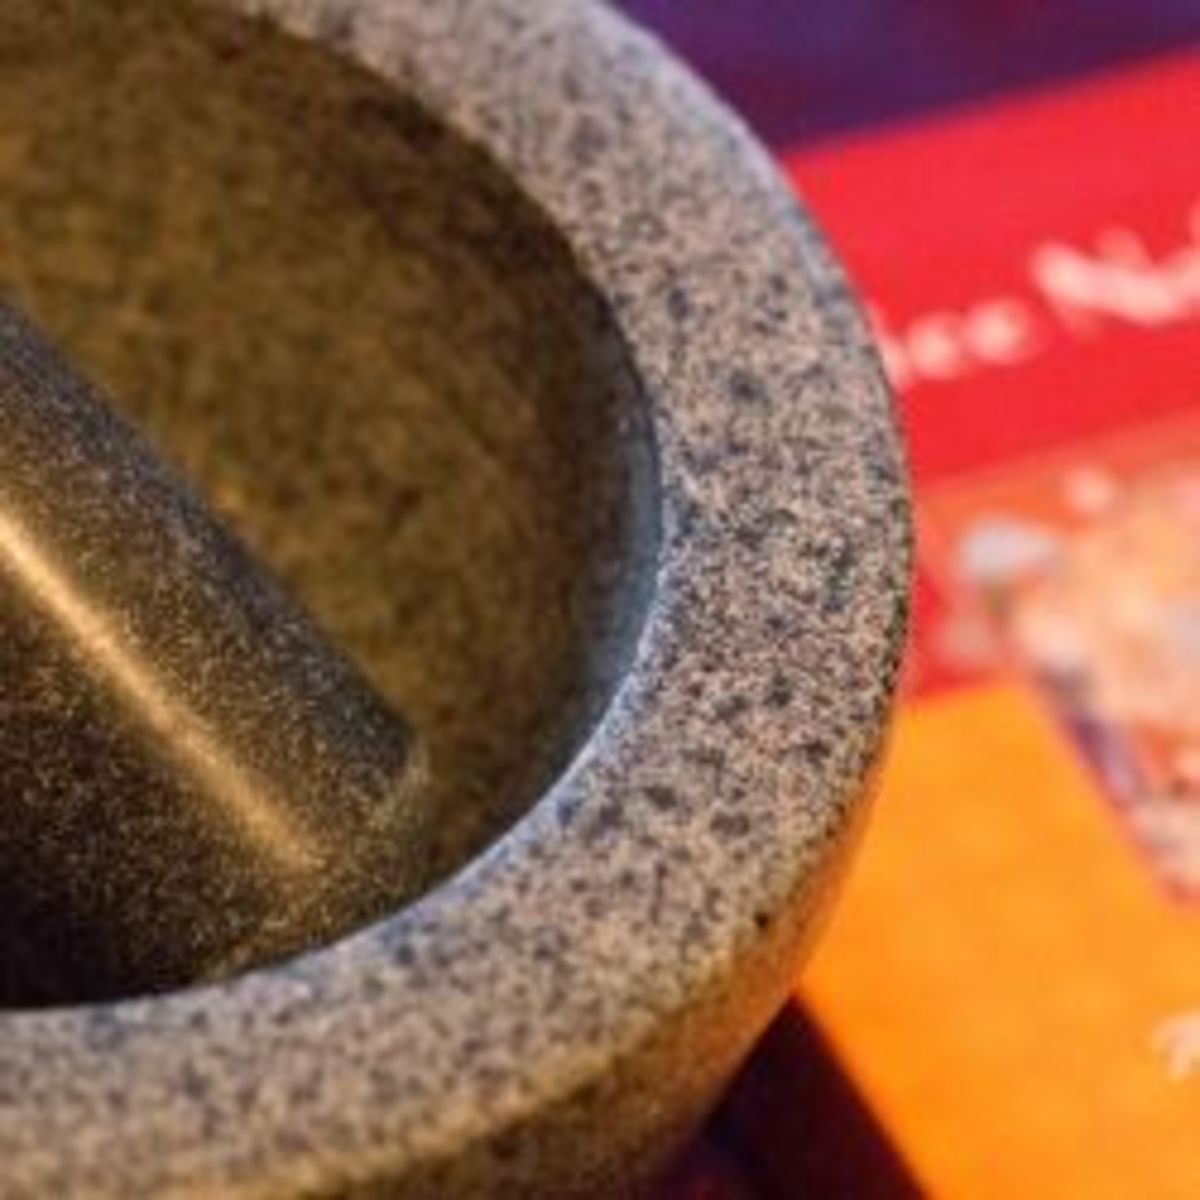 Granite mortar and pestle - heavy, but fabulously quick to grind spices!